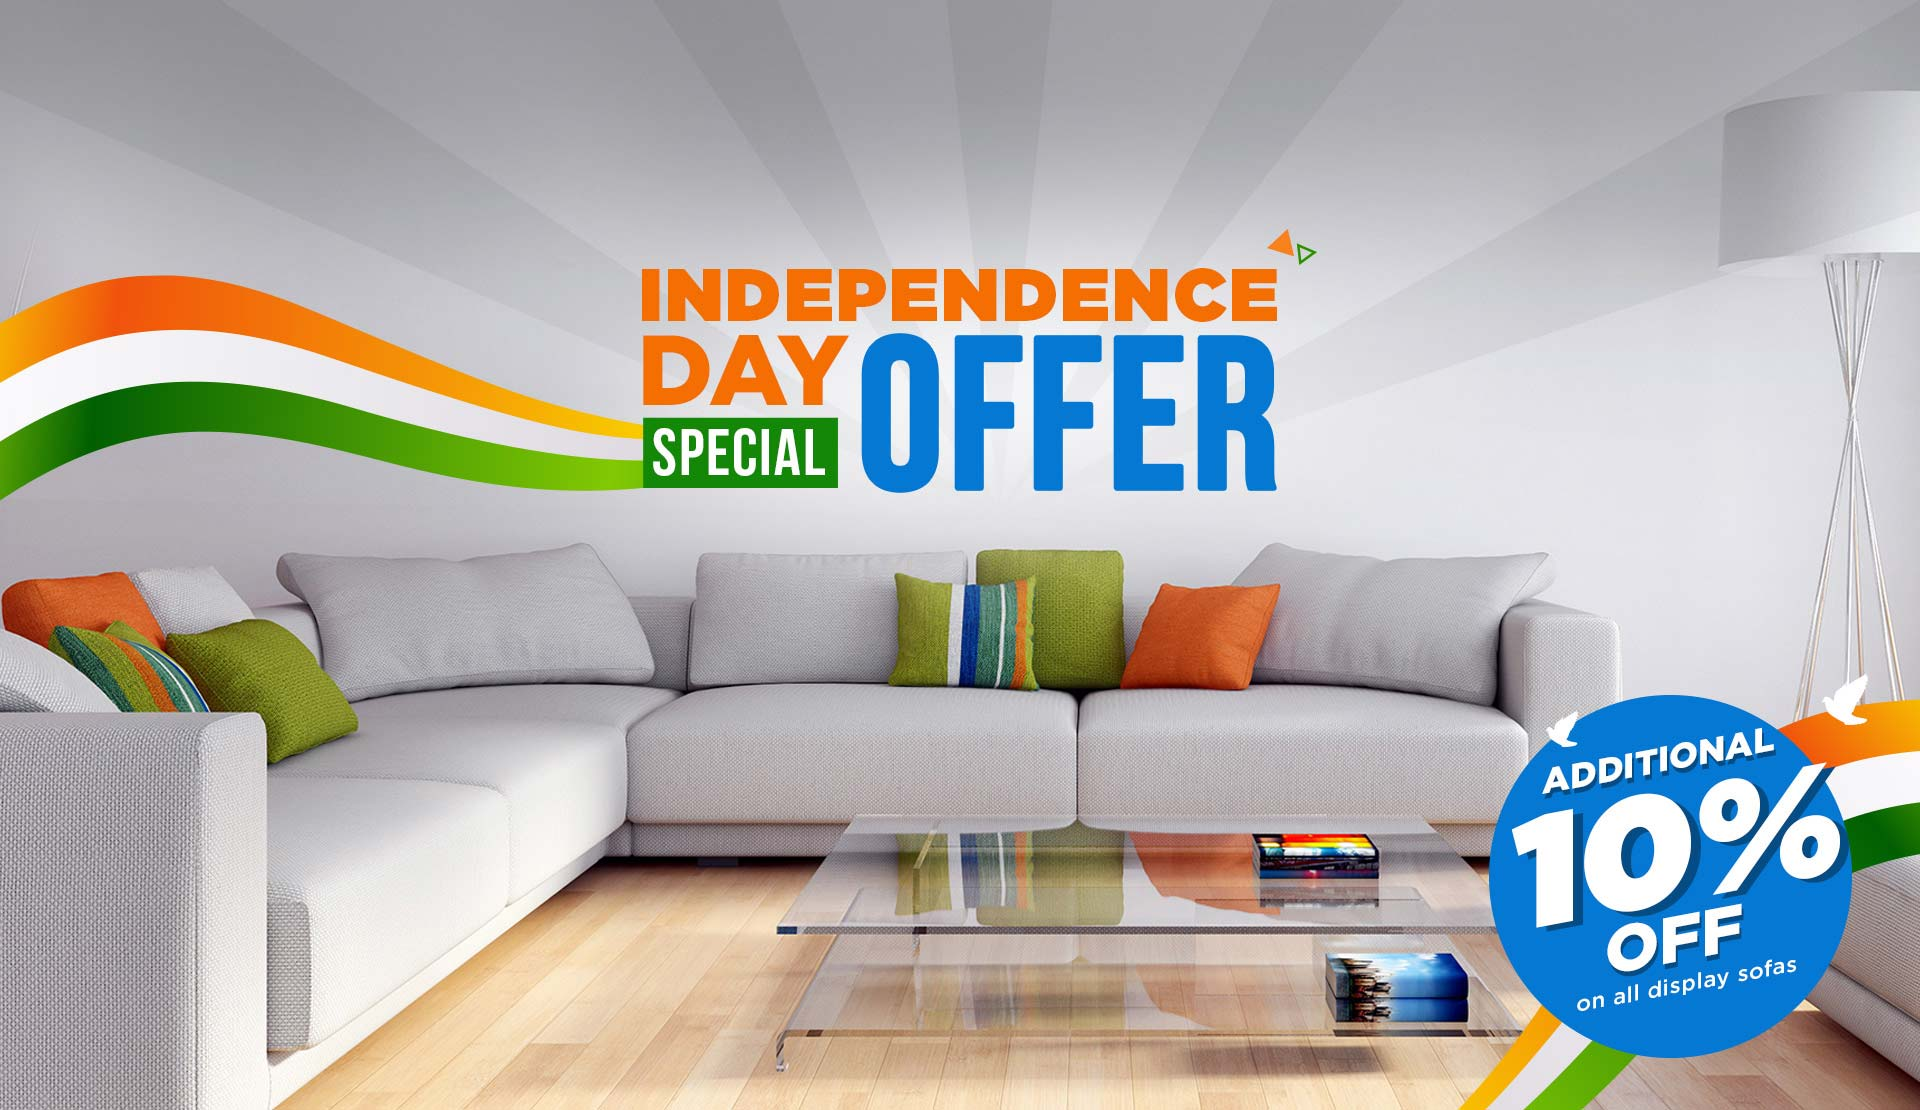 Renovate Your Home & Office with SPNS Sofas at 10% Off